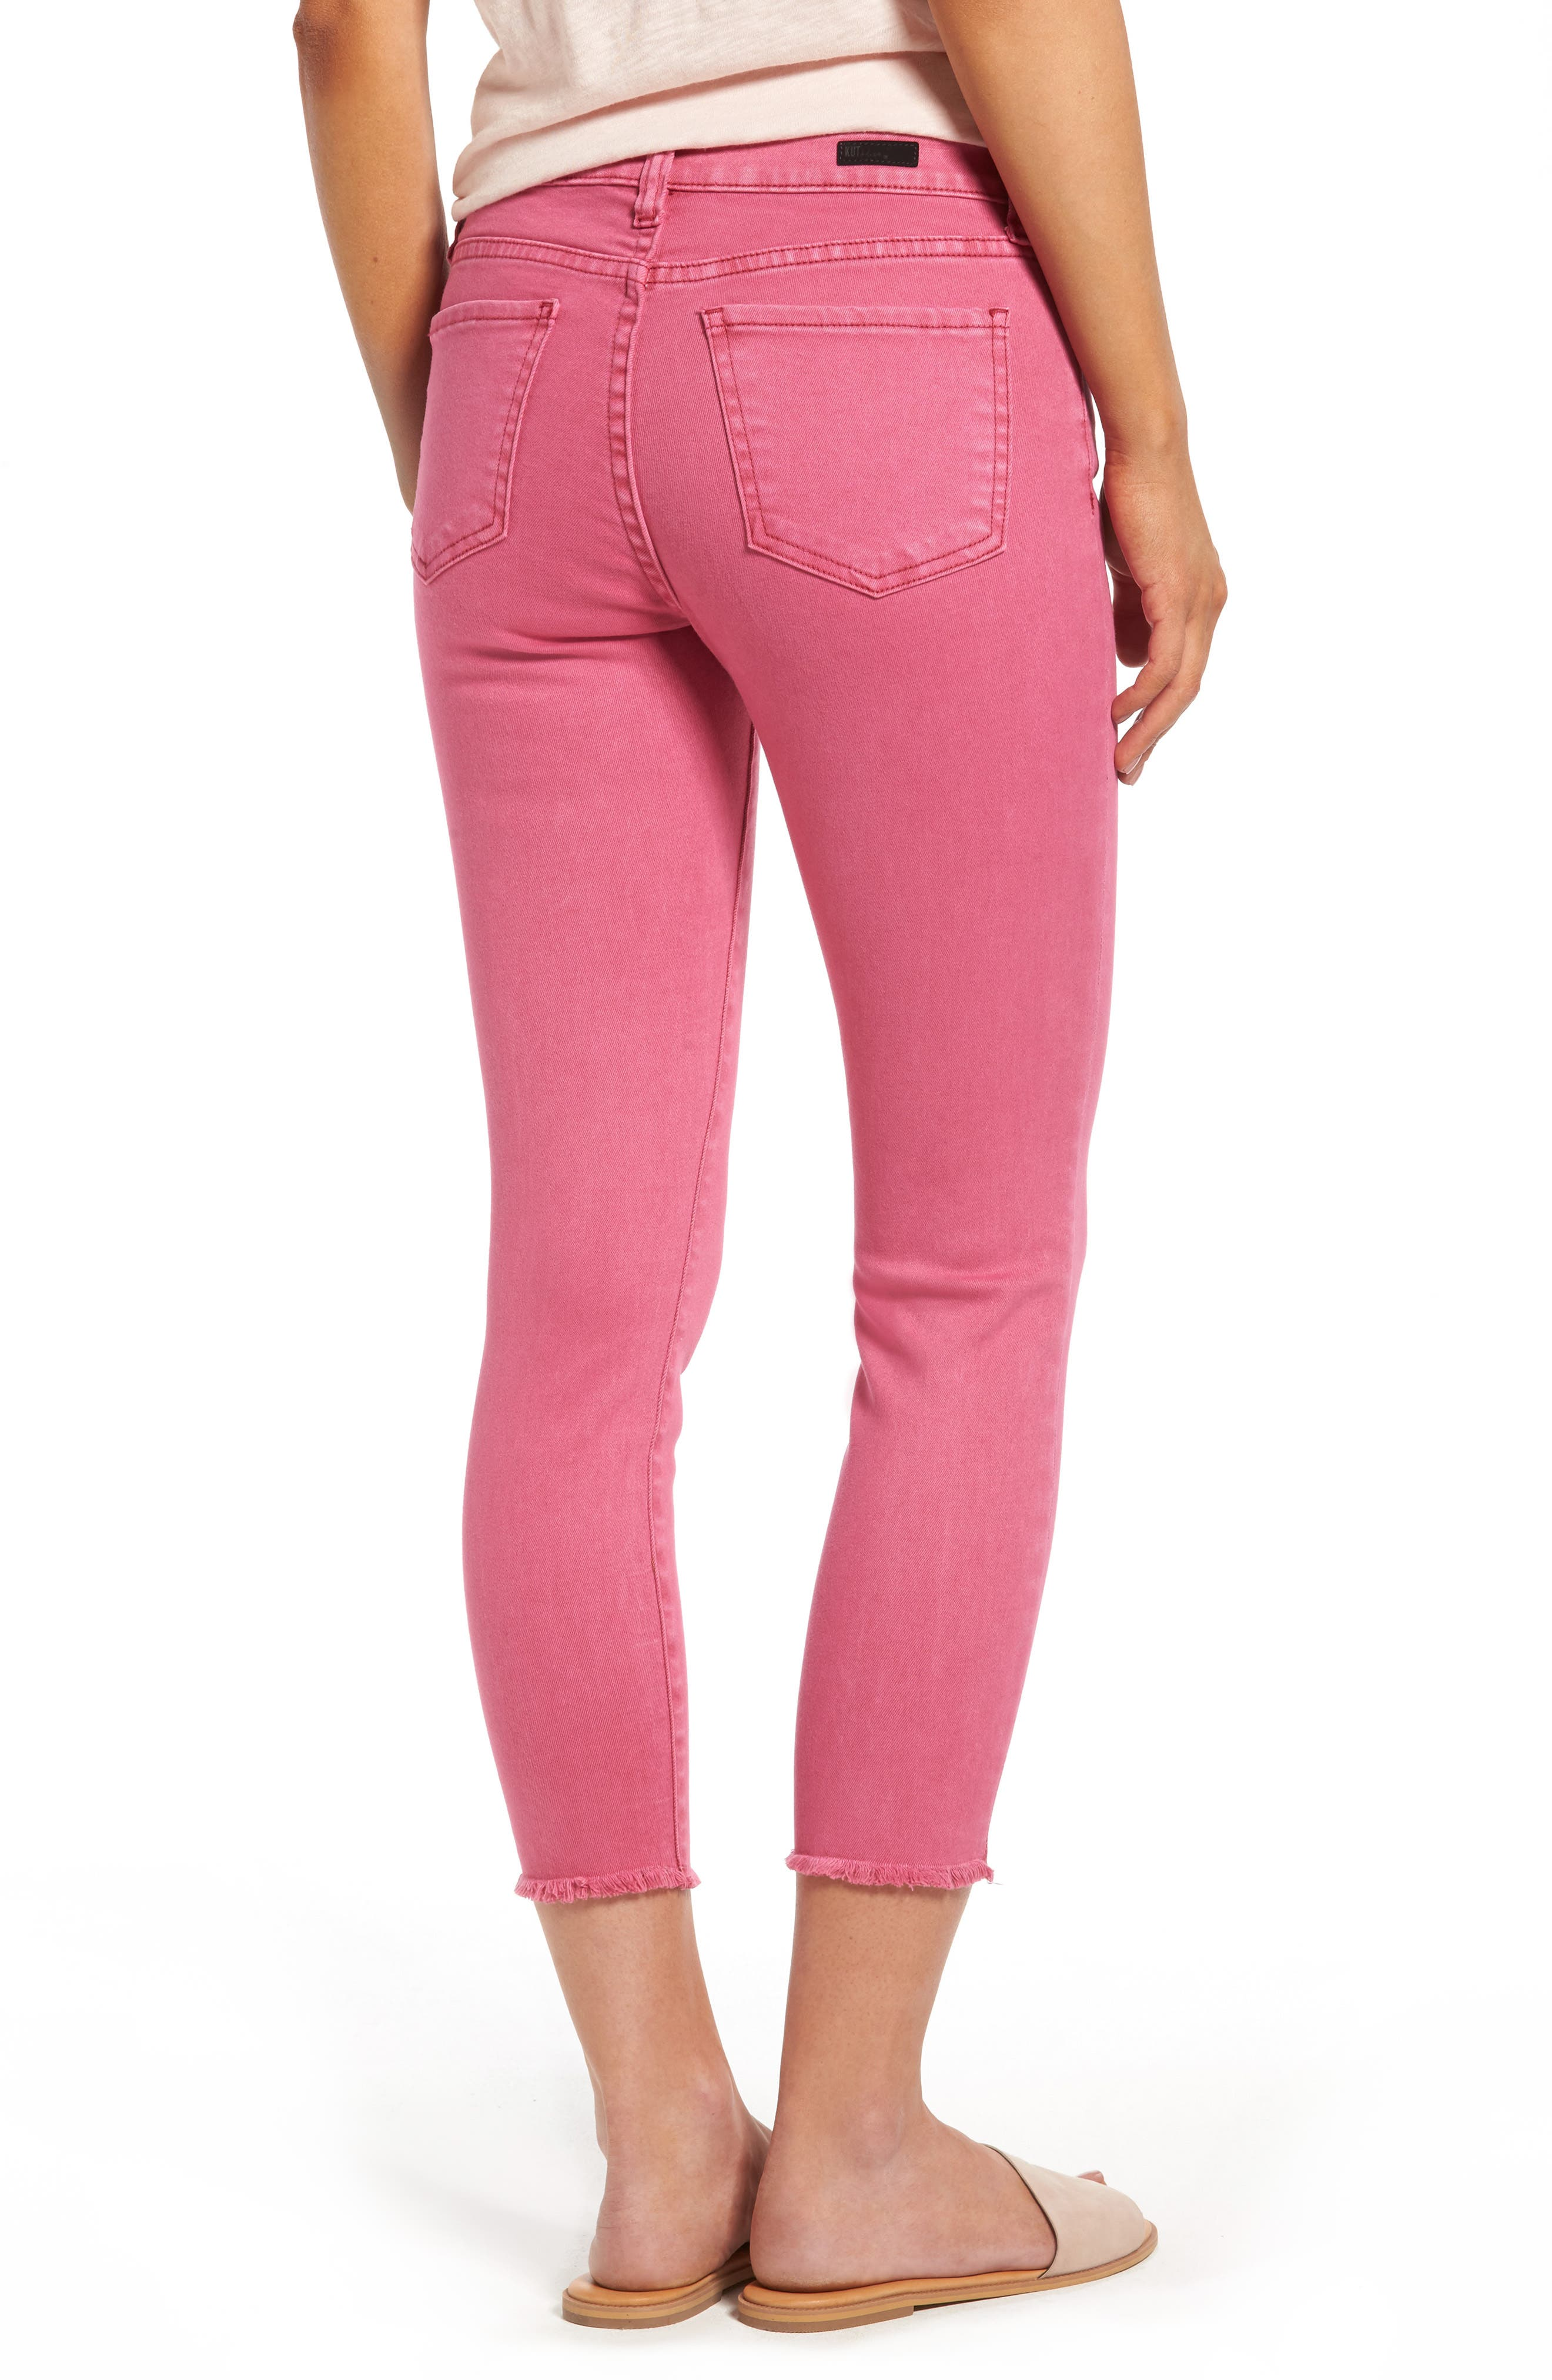 Alternate Image 2  - KUT from the Kloth Connie Frayed Hem Crop Skinny Jeans (Hot Pink)